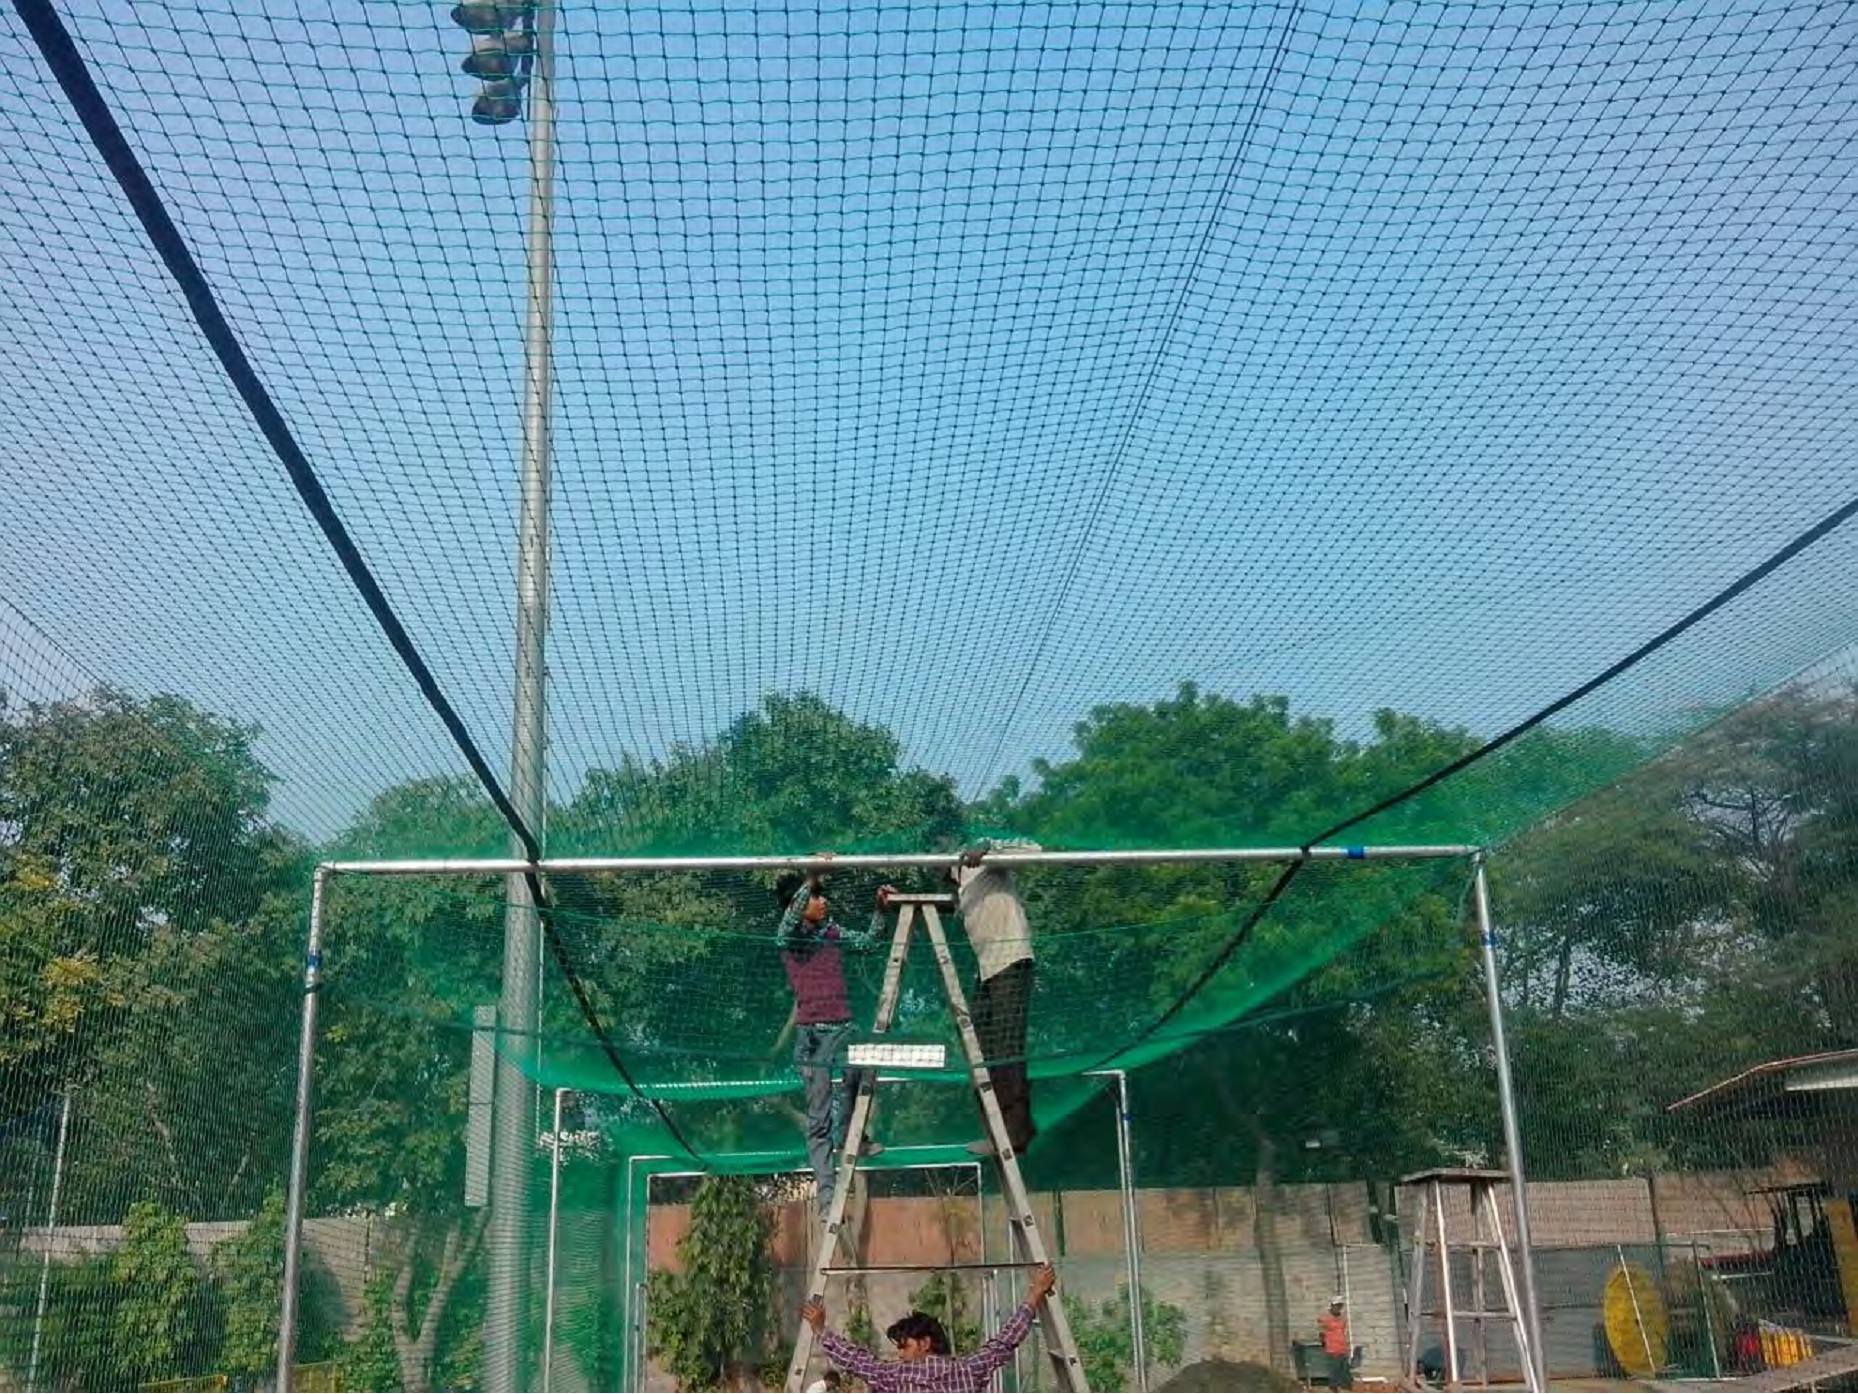 Cricket Net 7 bajajsports